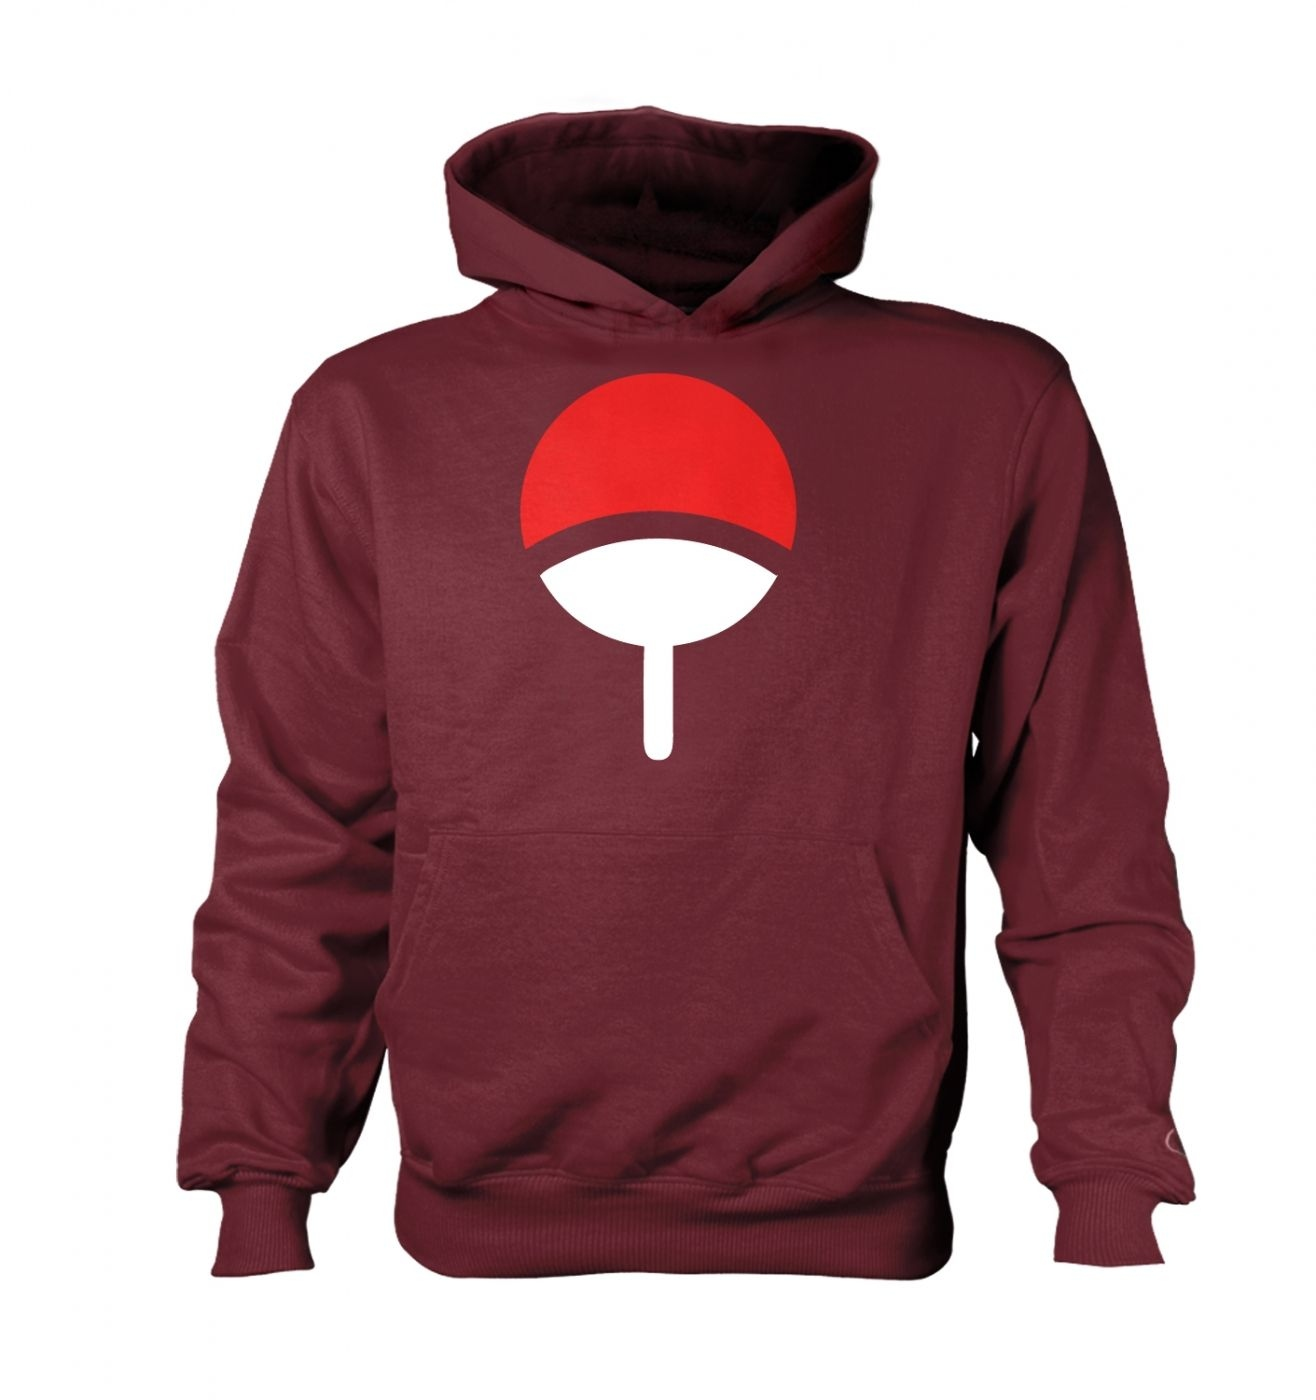 Uchiha Family kids contrast hoodie  - Inspired by Naruto